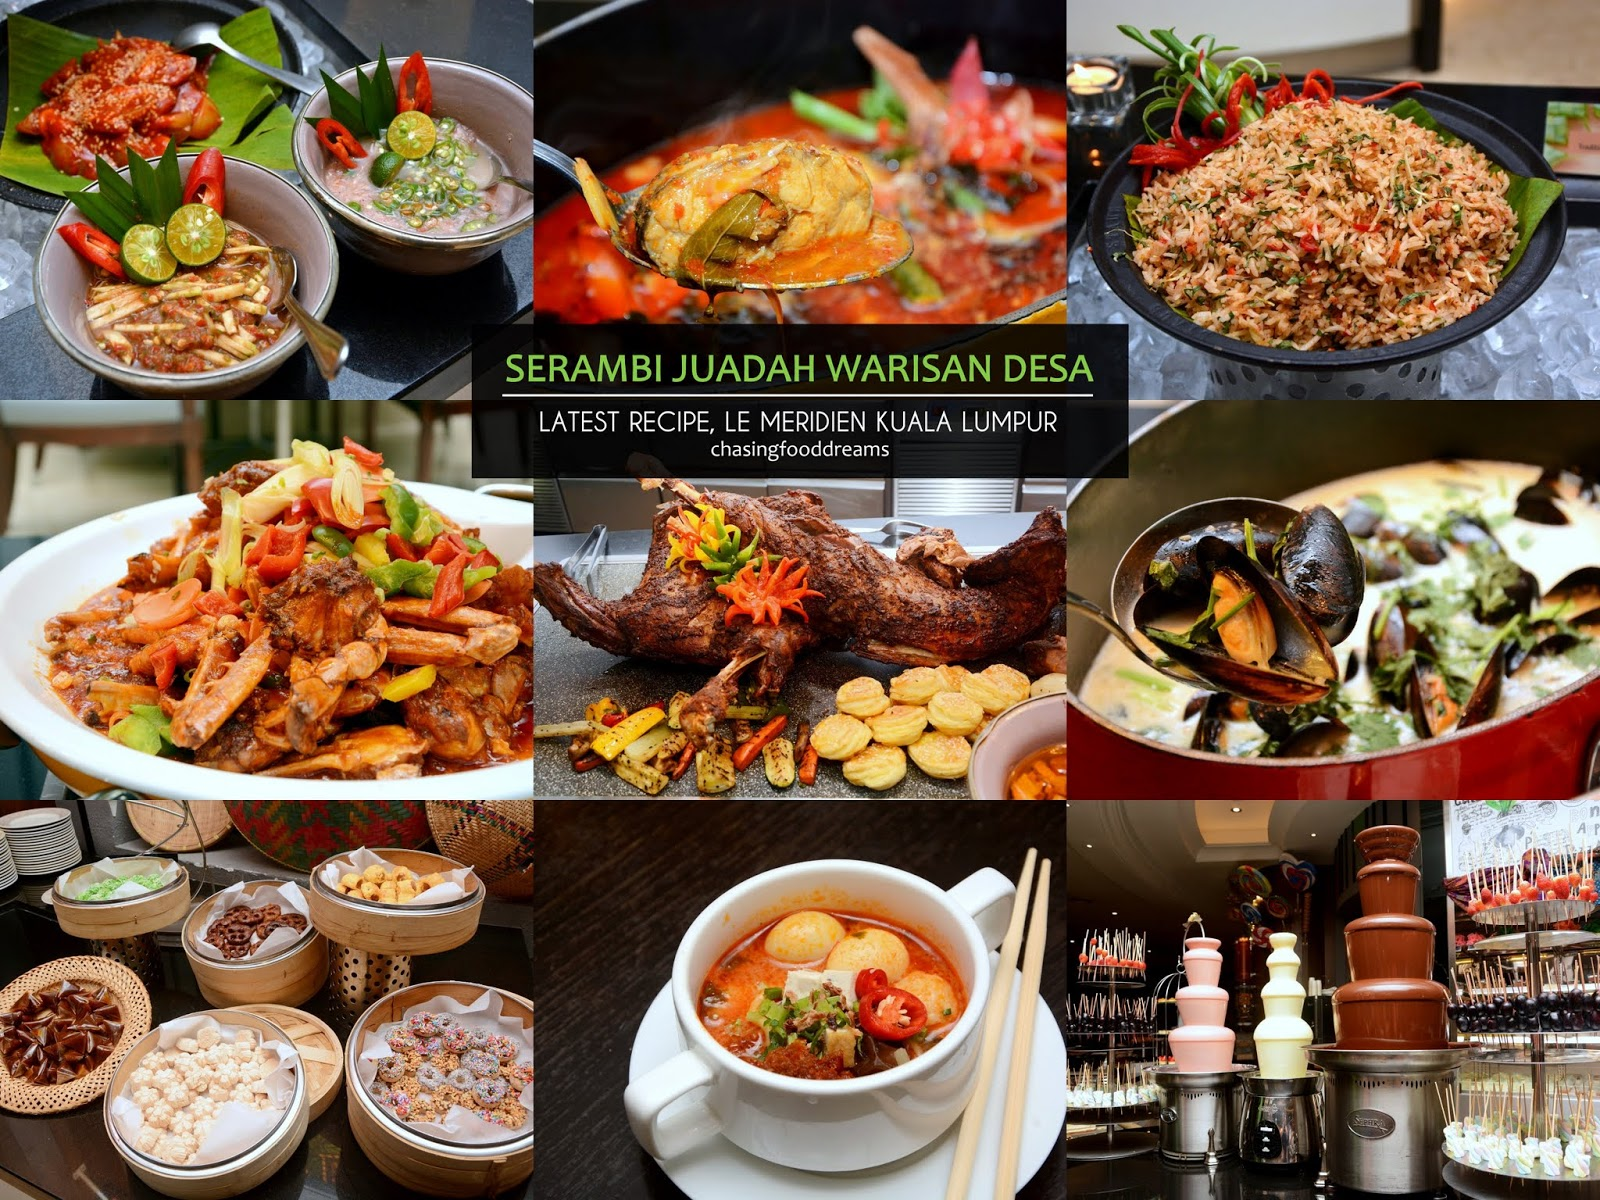 chasing food dreams buka puasa buffet recipe le